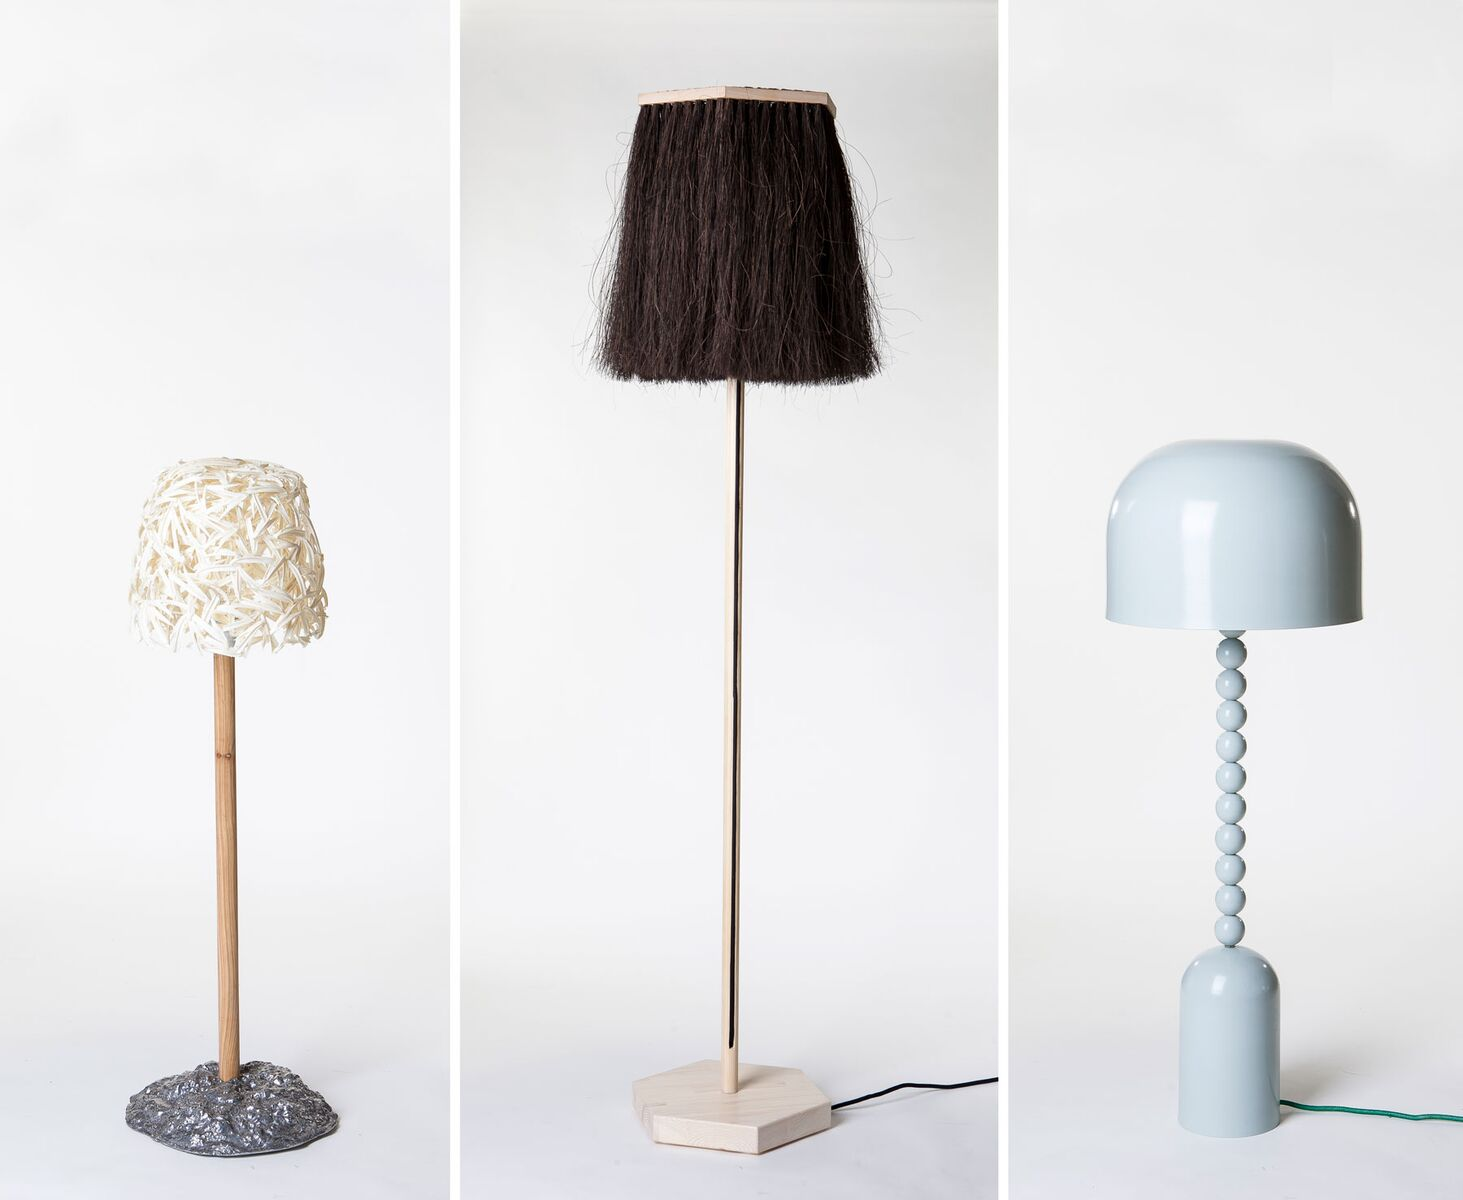 The three original lamps. From the left: Hugdetta, Iceland, Petra Lilja, Sweden and Alto+Alto, Finland.